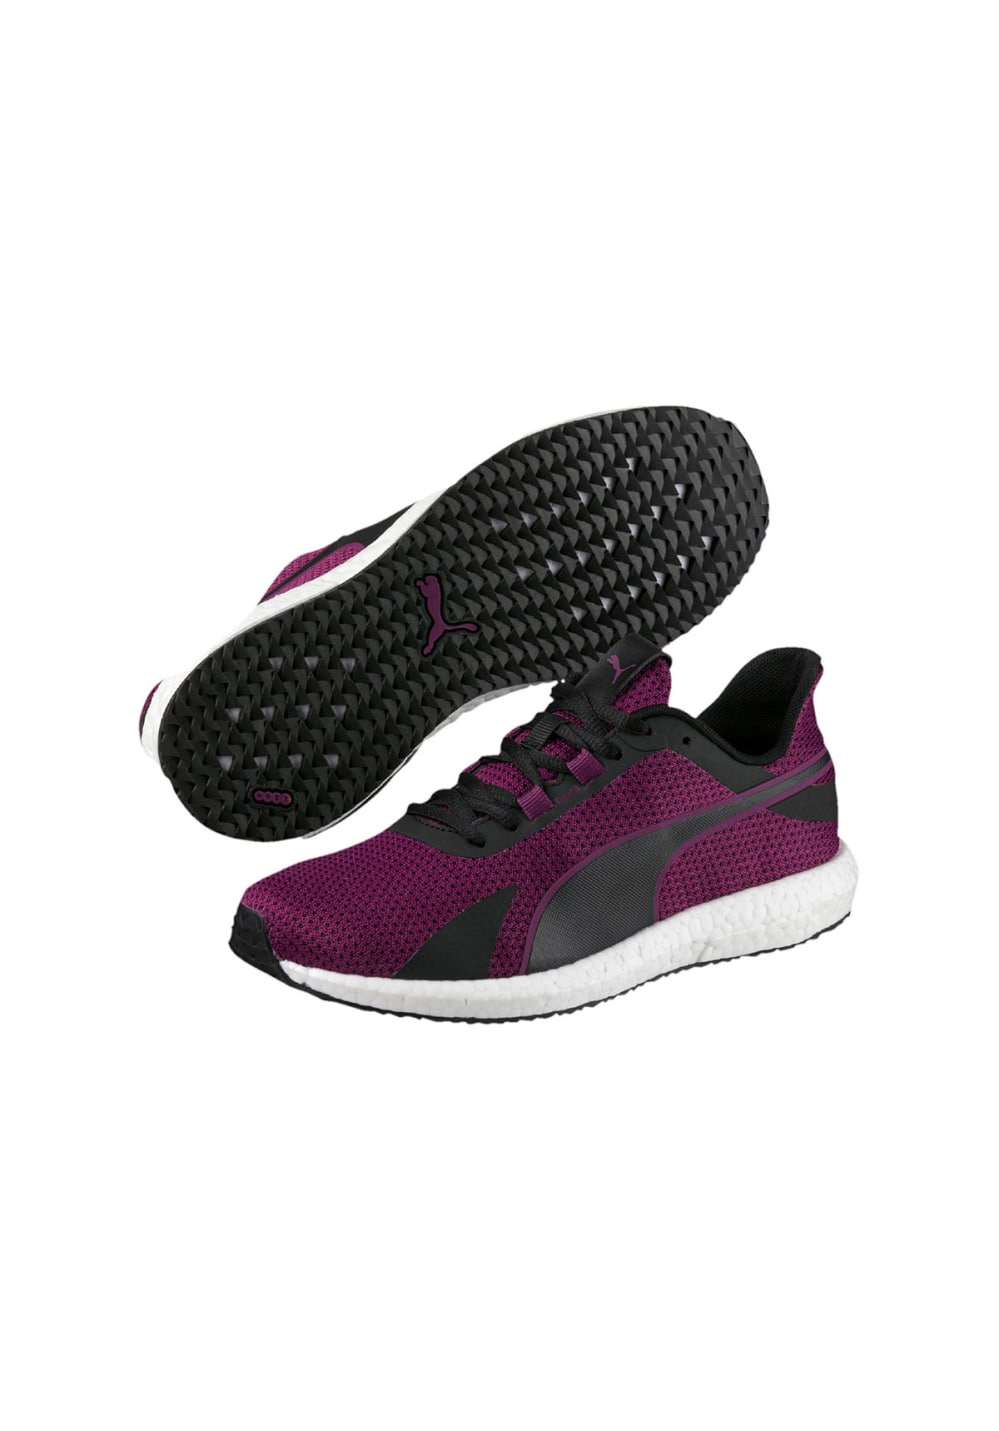 48eef23e533cbb ... Puma Mega NRGY Turbo - Fitness shoes for Women - Black. Back to  Overview. 1  2  3  4. Previous